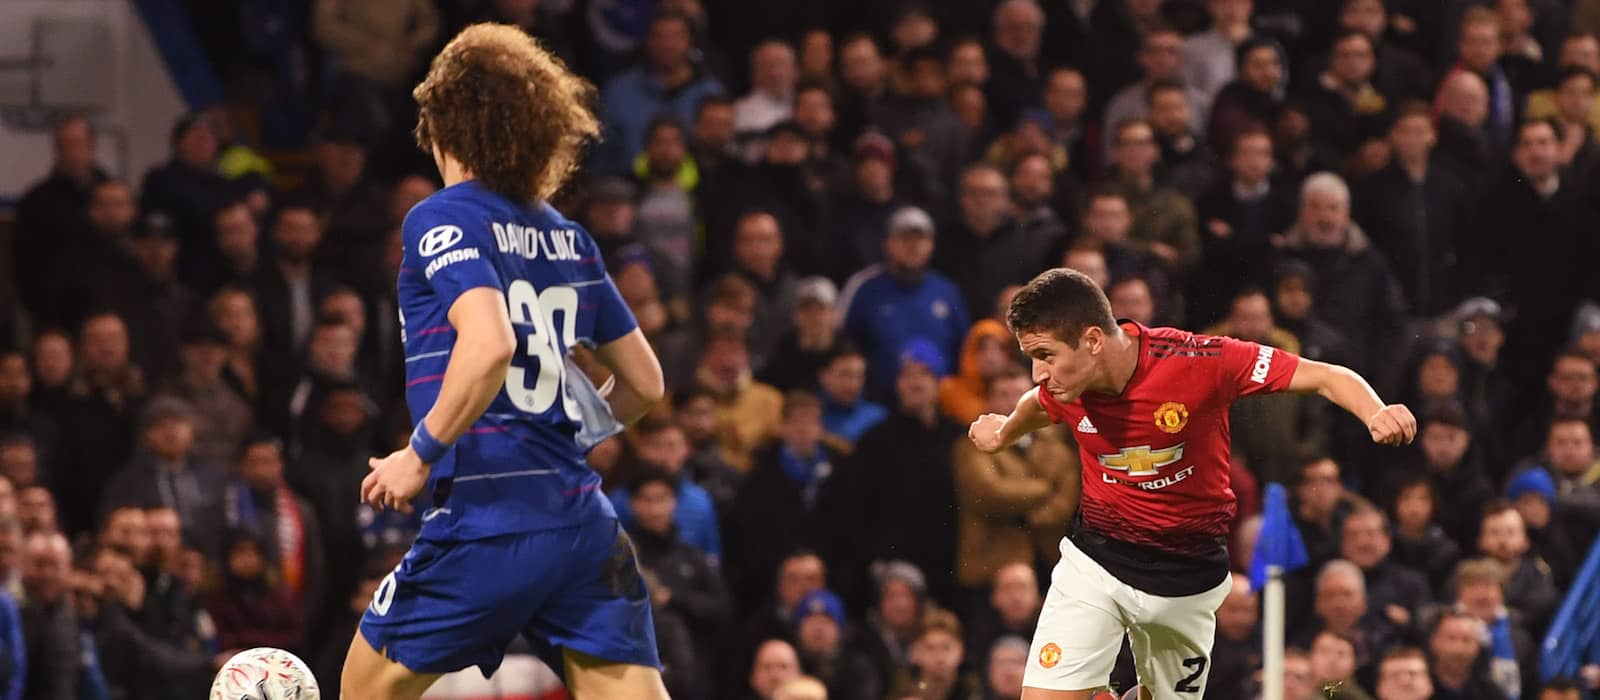 Manchester United players and staff praise away supporters following Chelsea victory